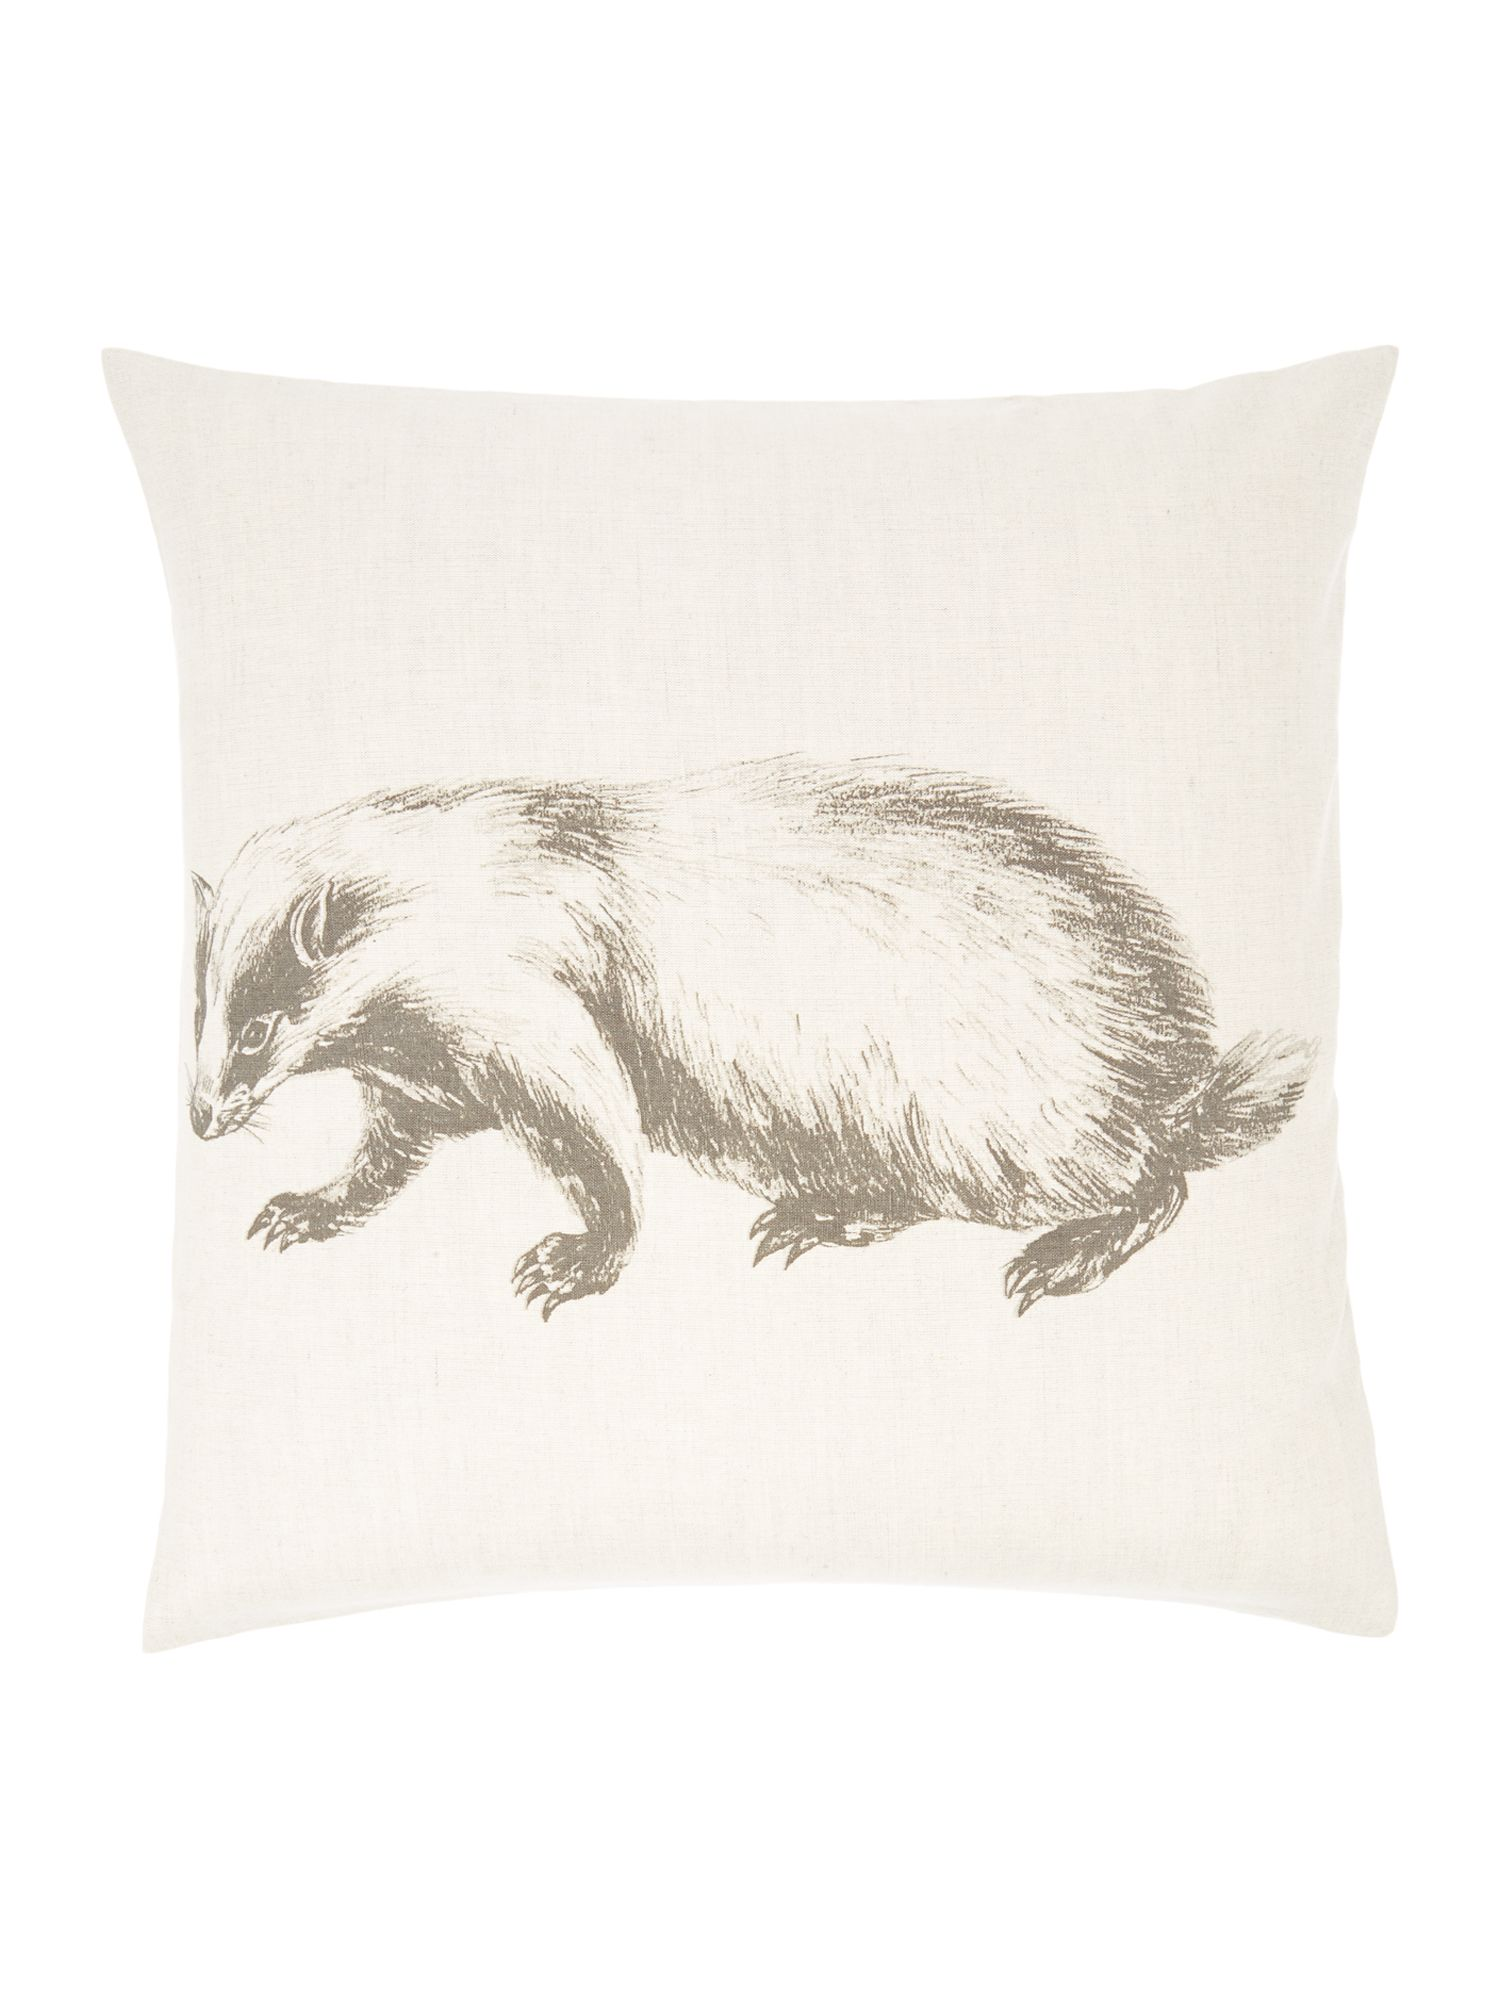 Badger pencil drawing print cushion